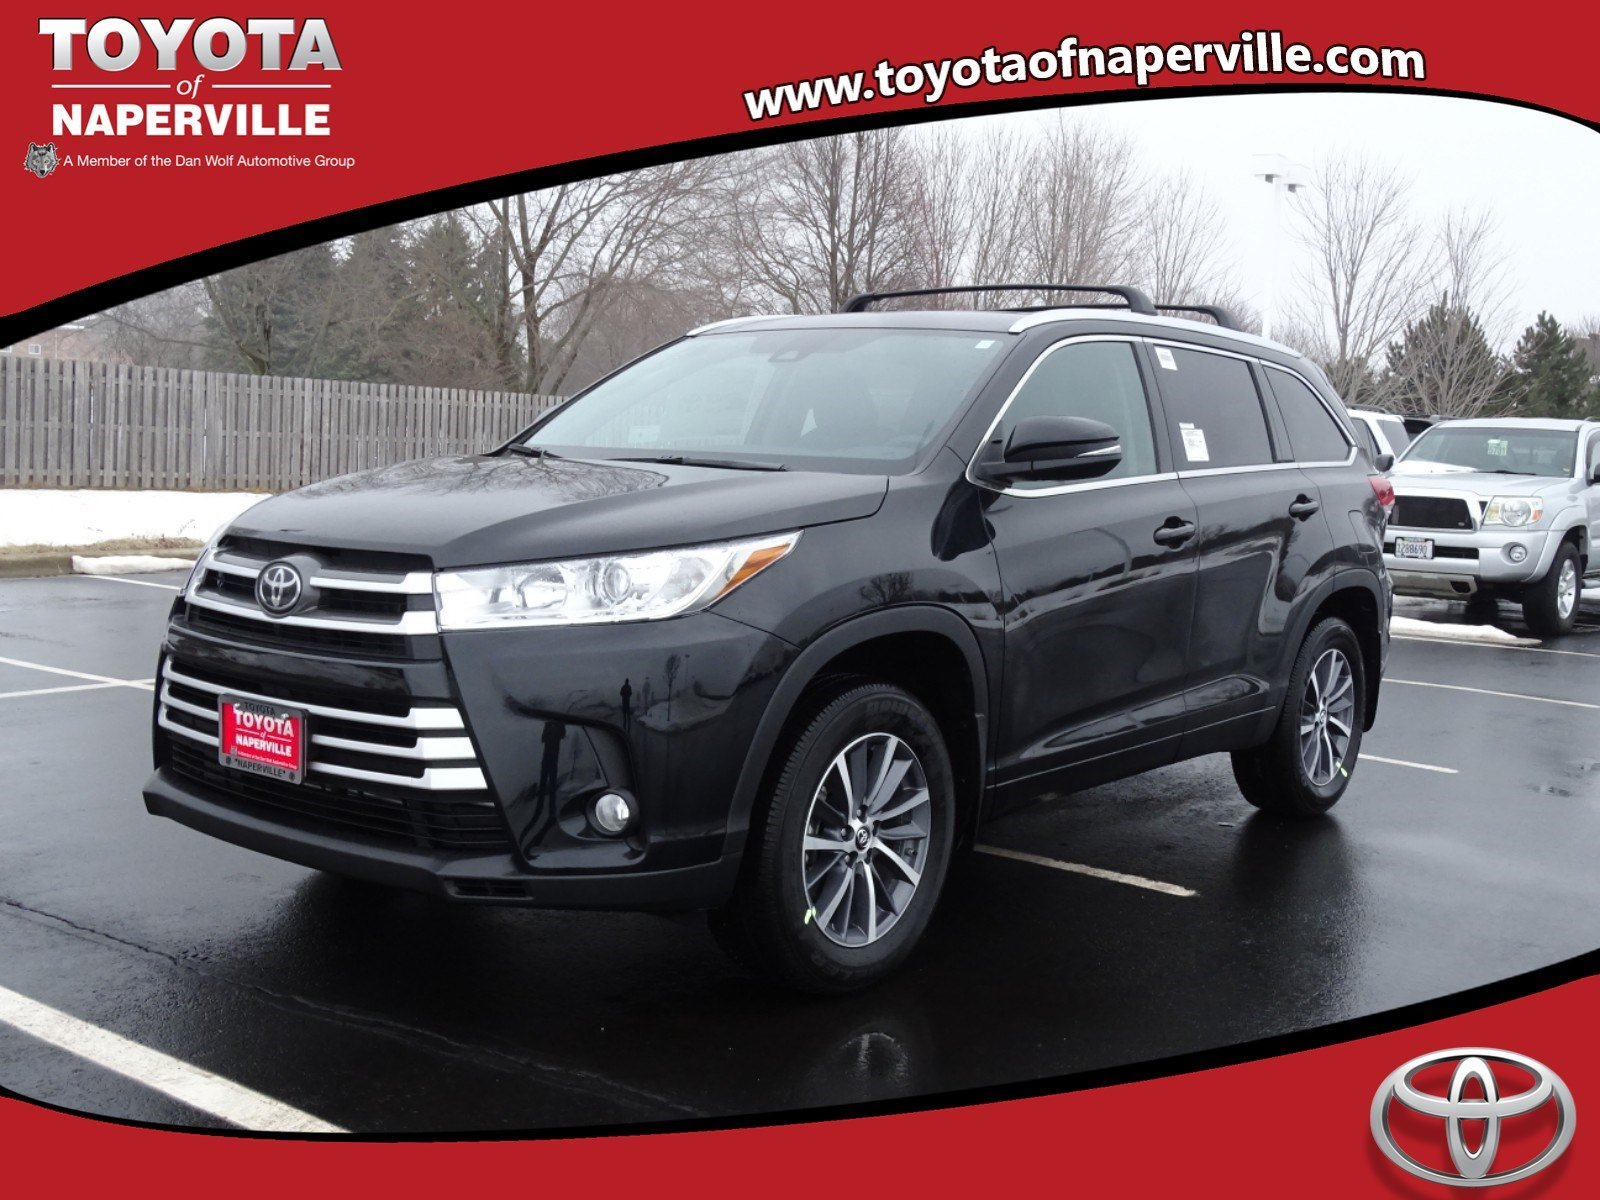 New 2018 Toyota Highlander Xle With Navigation Awd Trailer Wiring Harness